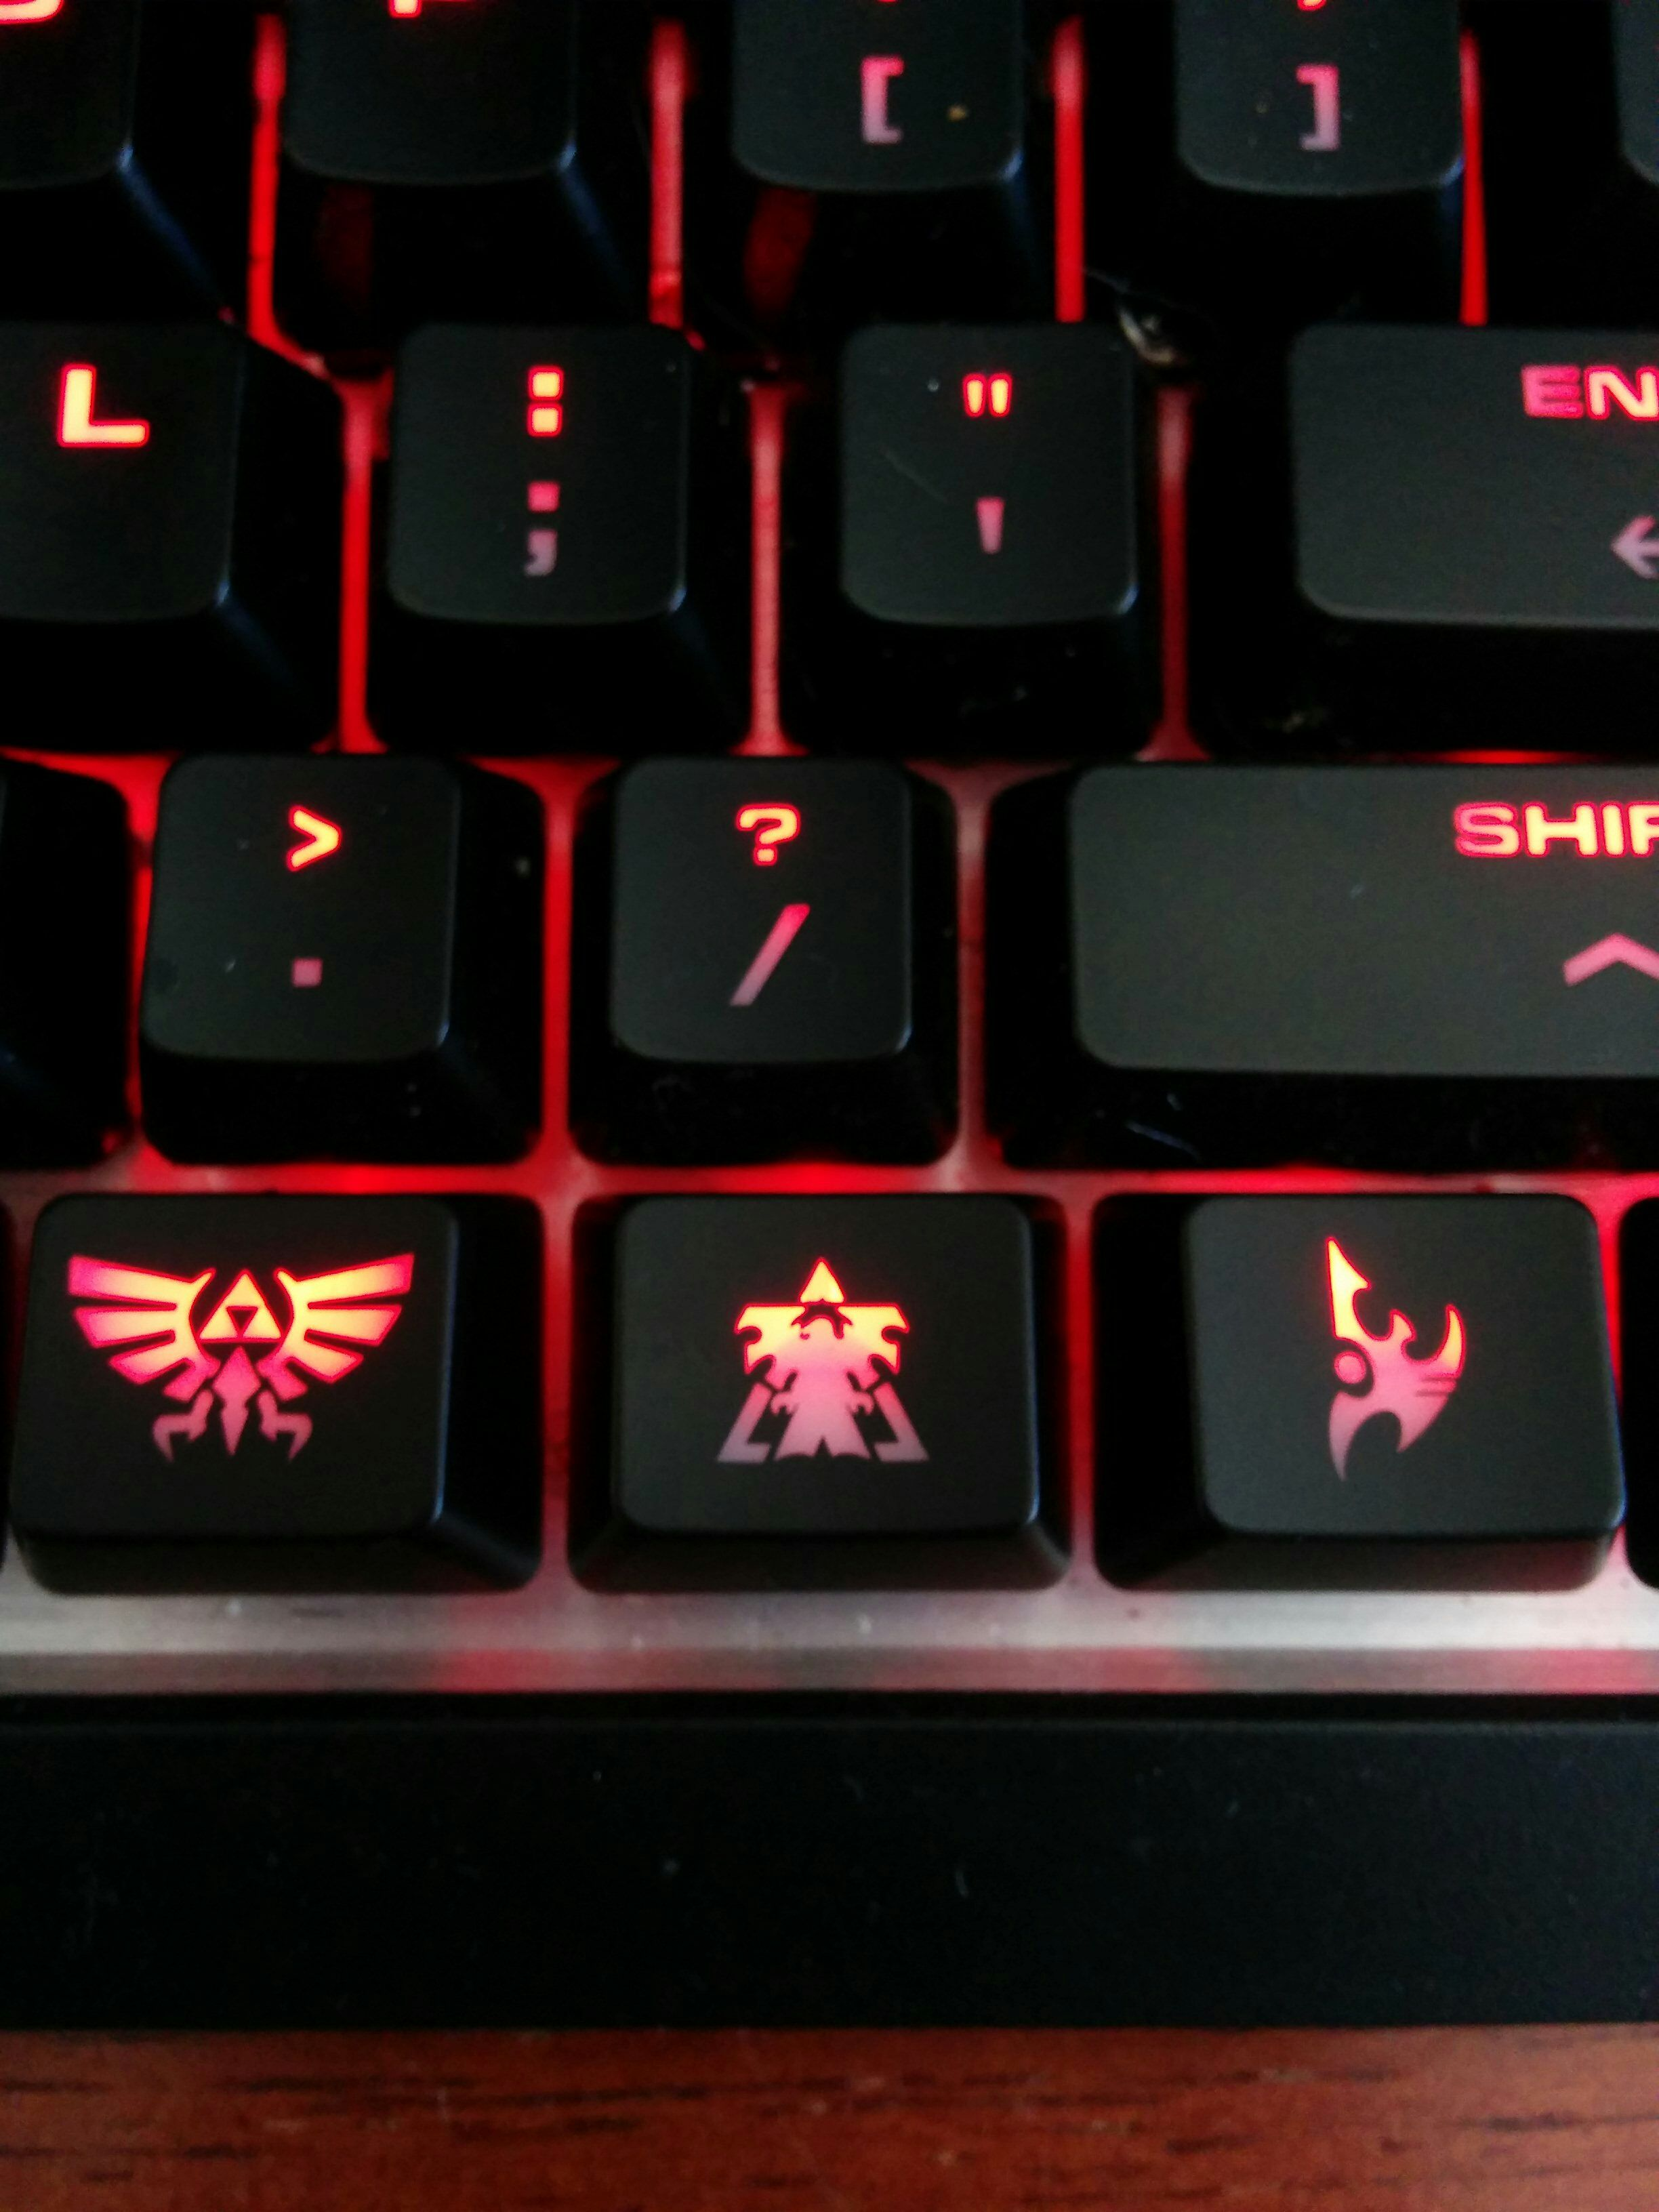 Custom key caps just came in #games #Starcraft #Starcraft2